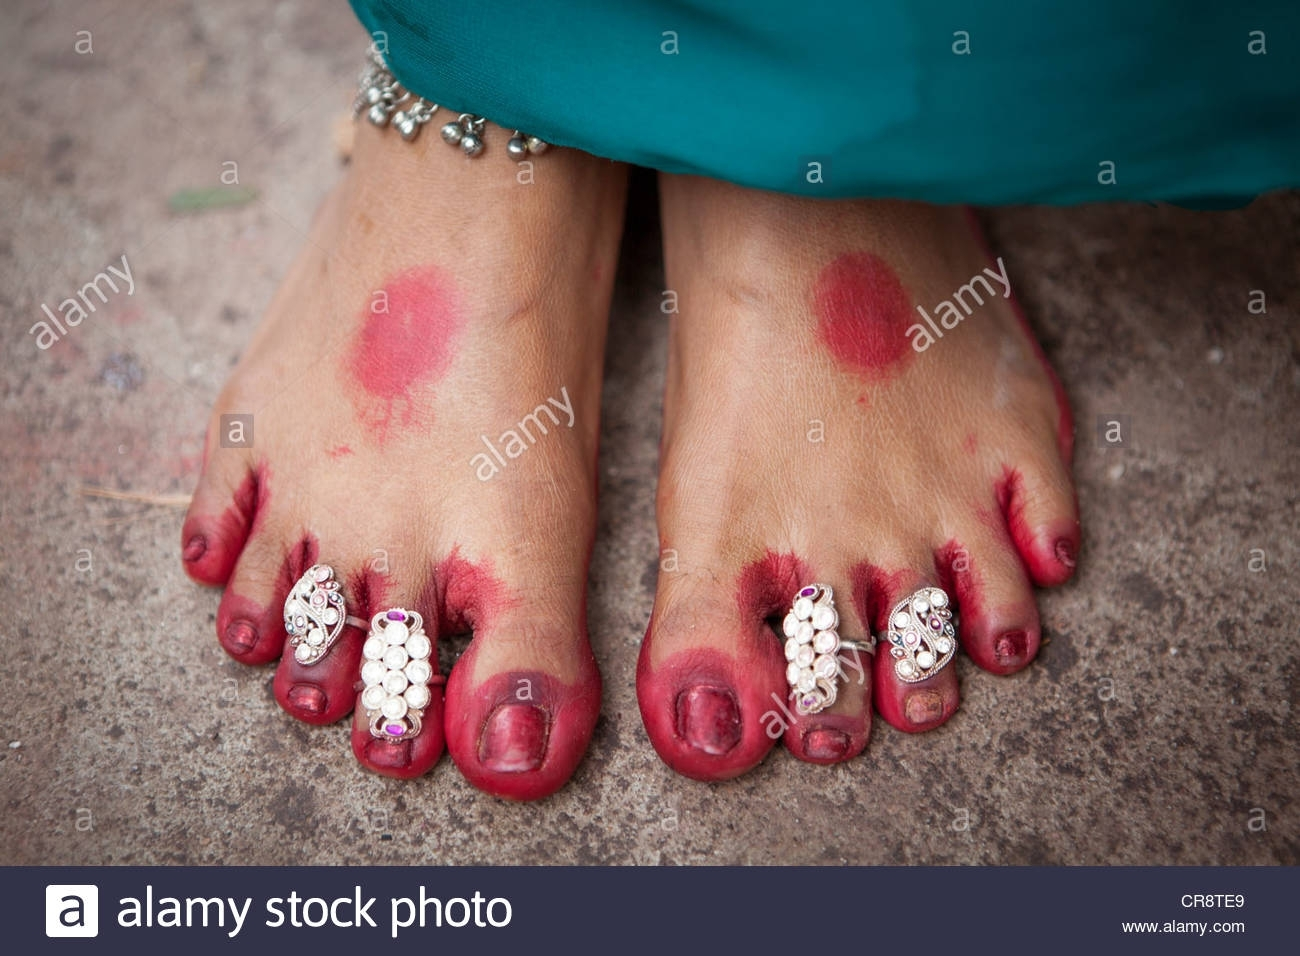 Toe Ring Stock Photos & Toe Ring Stock Images – Alamy Intended For Current Custom Toe Rings (Gallery 9 of 15)